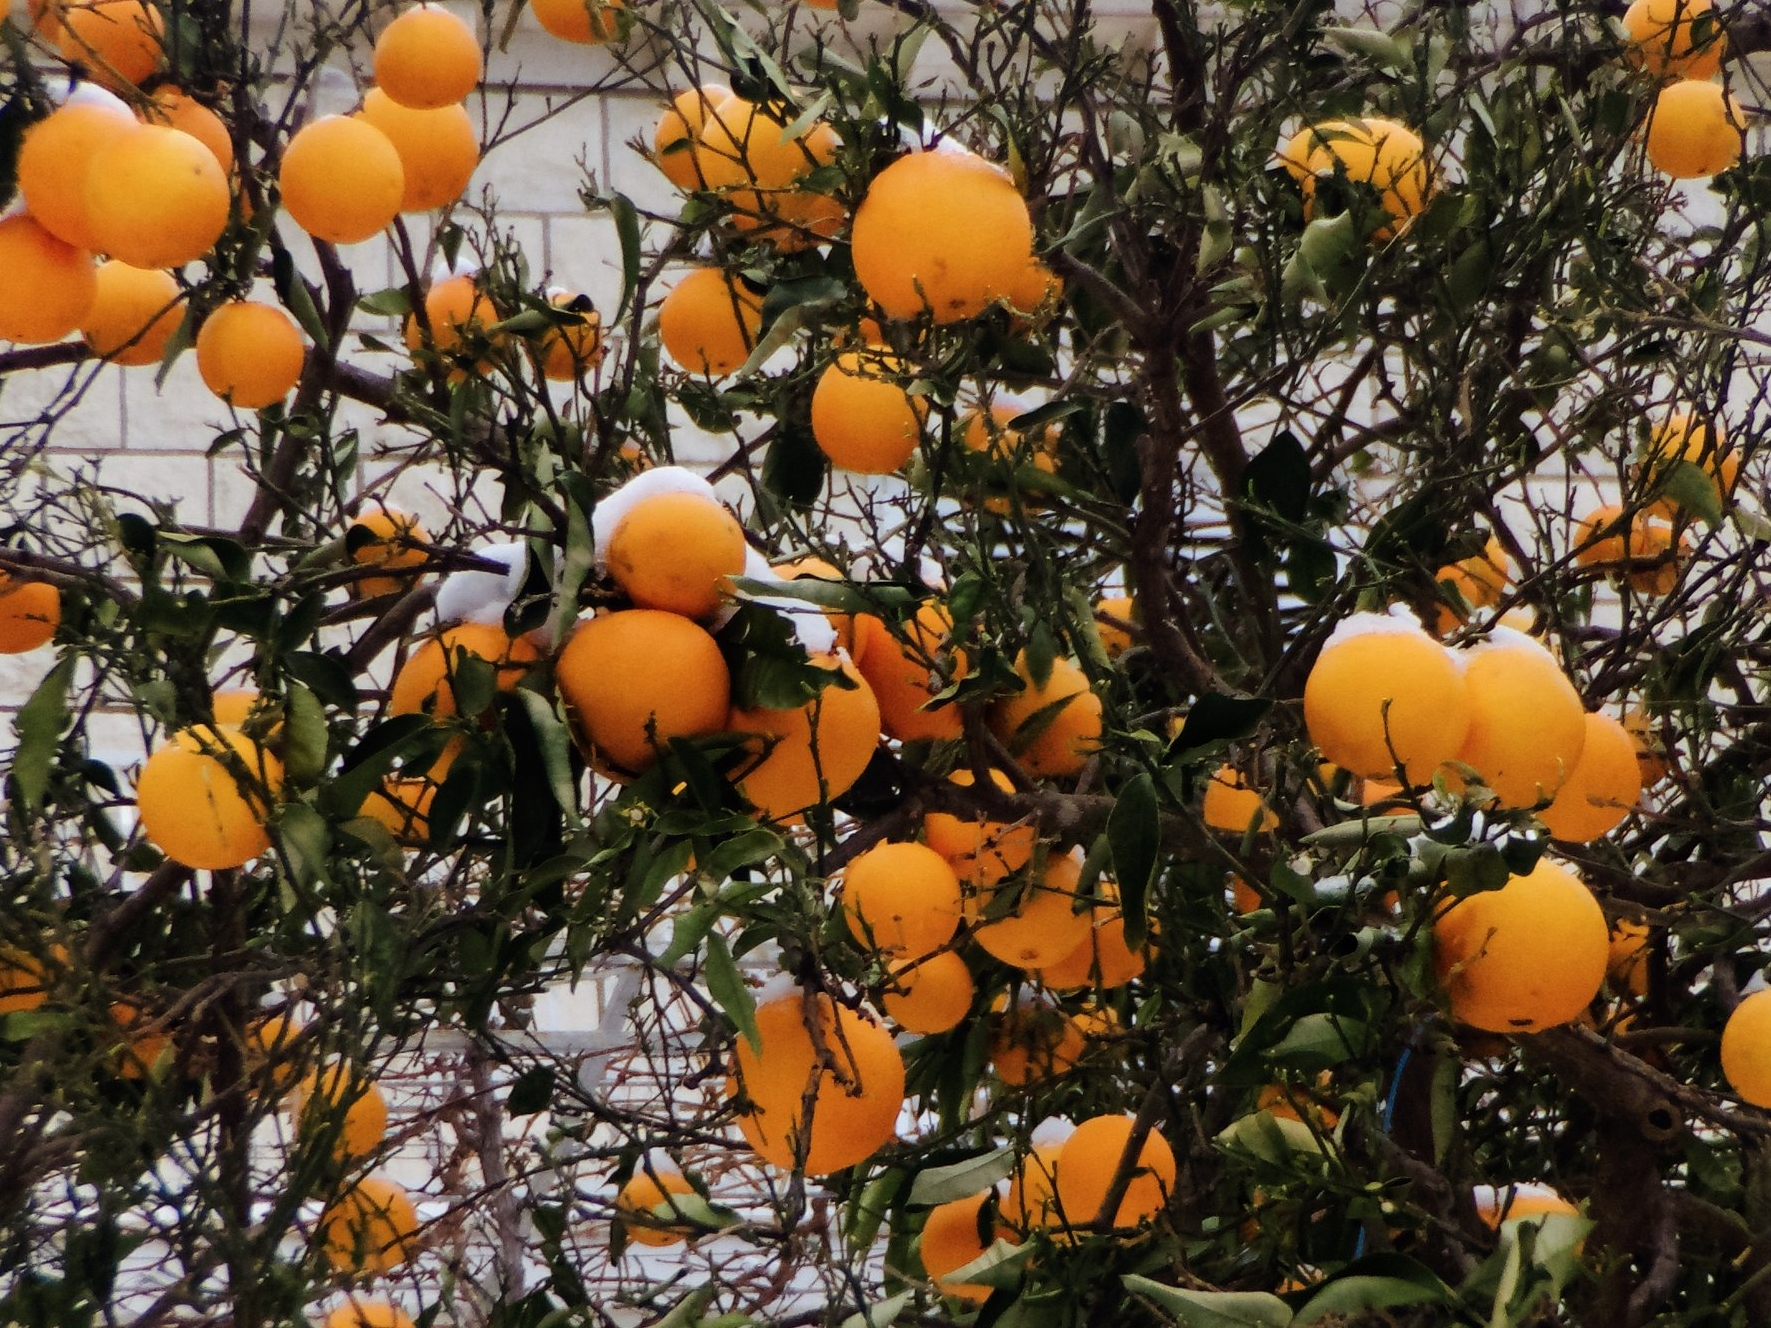 Oranges with a snow hat